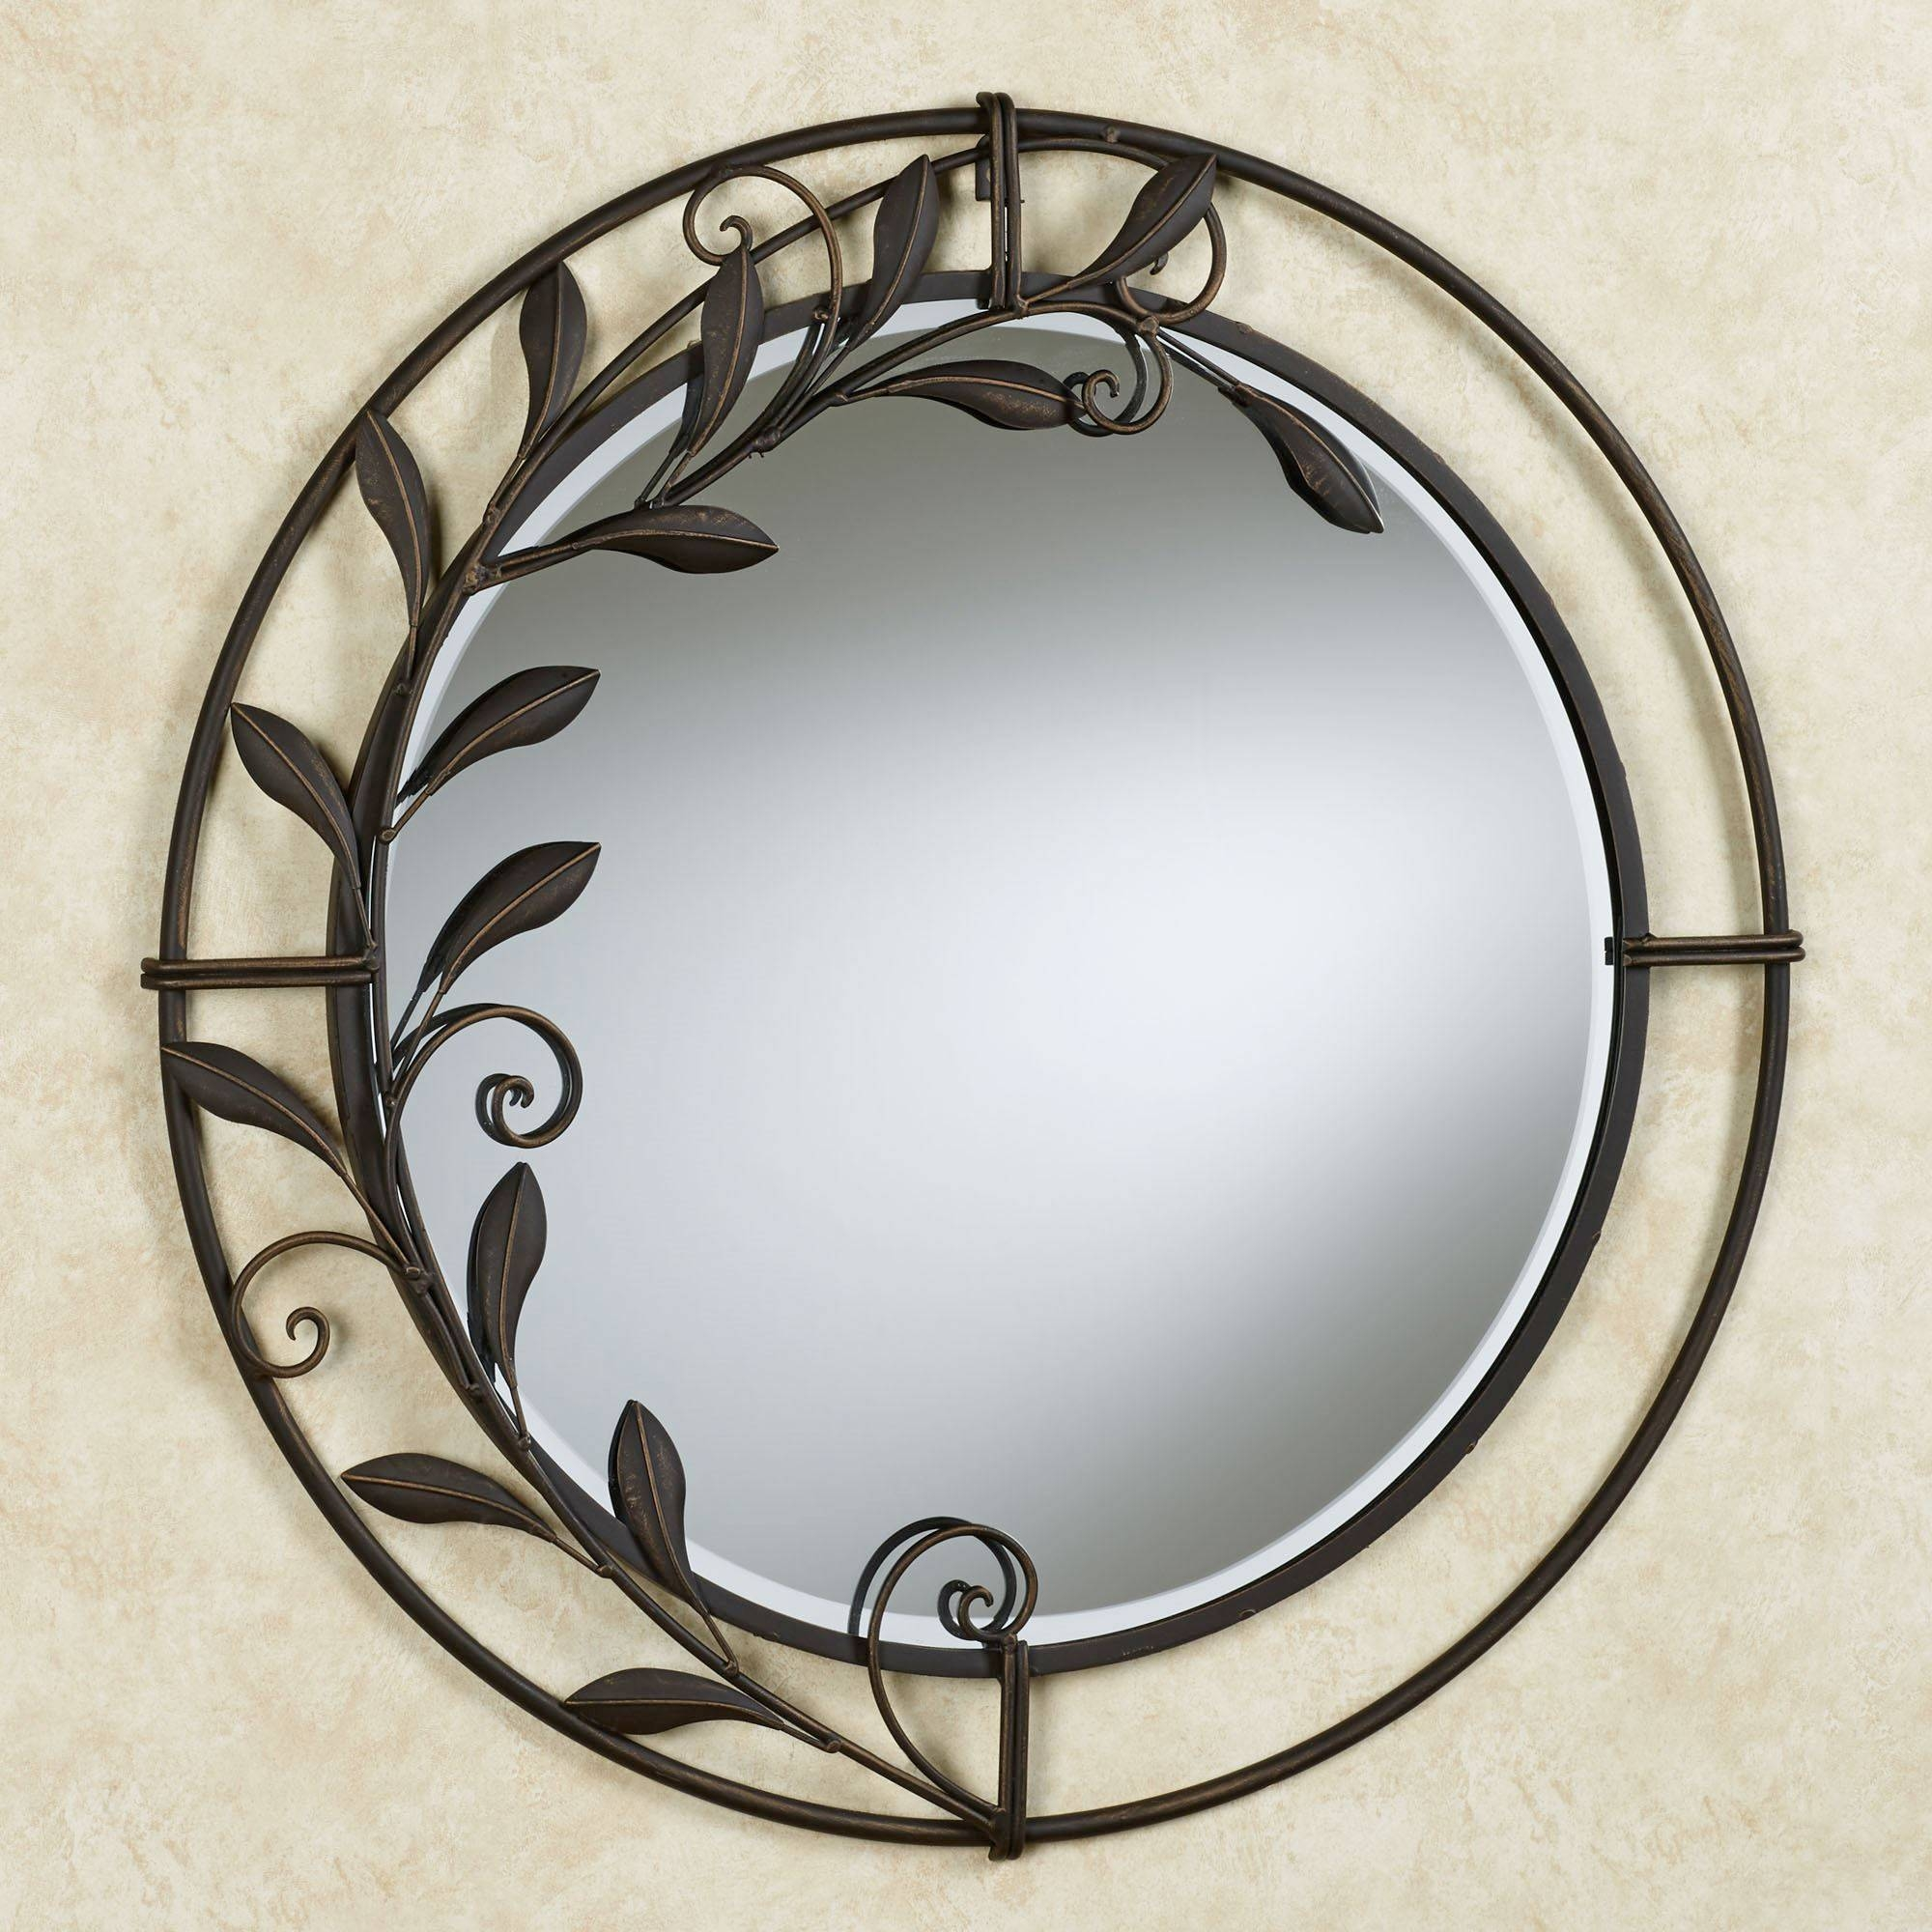 Galeazzo Antique Bronze Round Metal Wall Mirror in Antique Round Mirrors (Image 9 of 25)